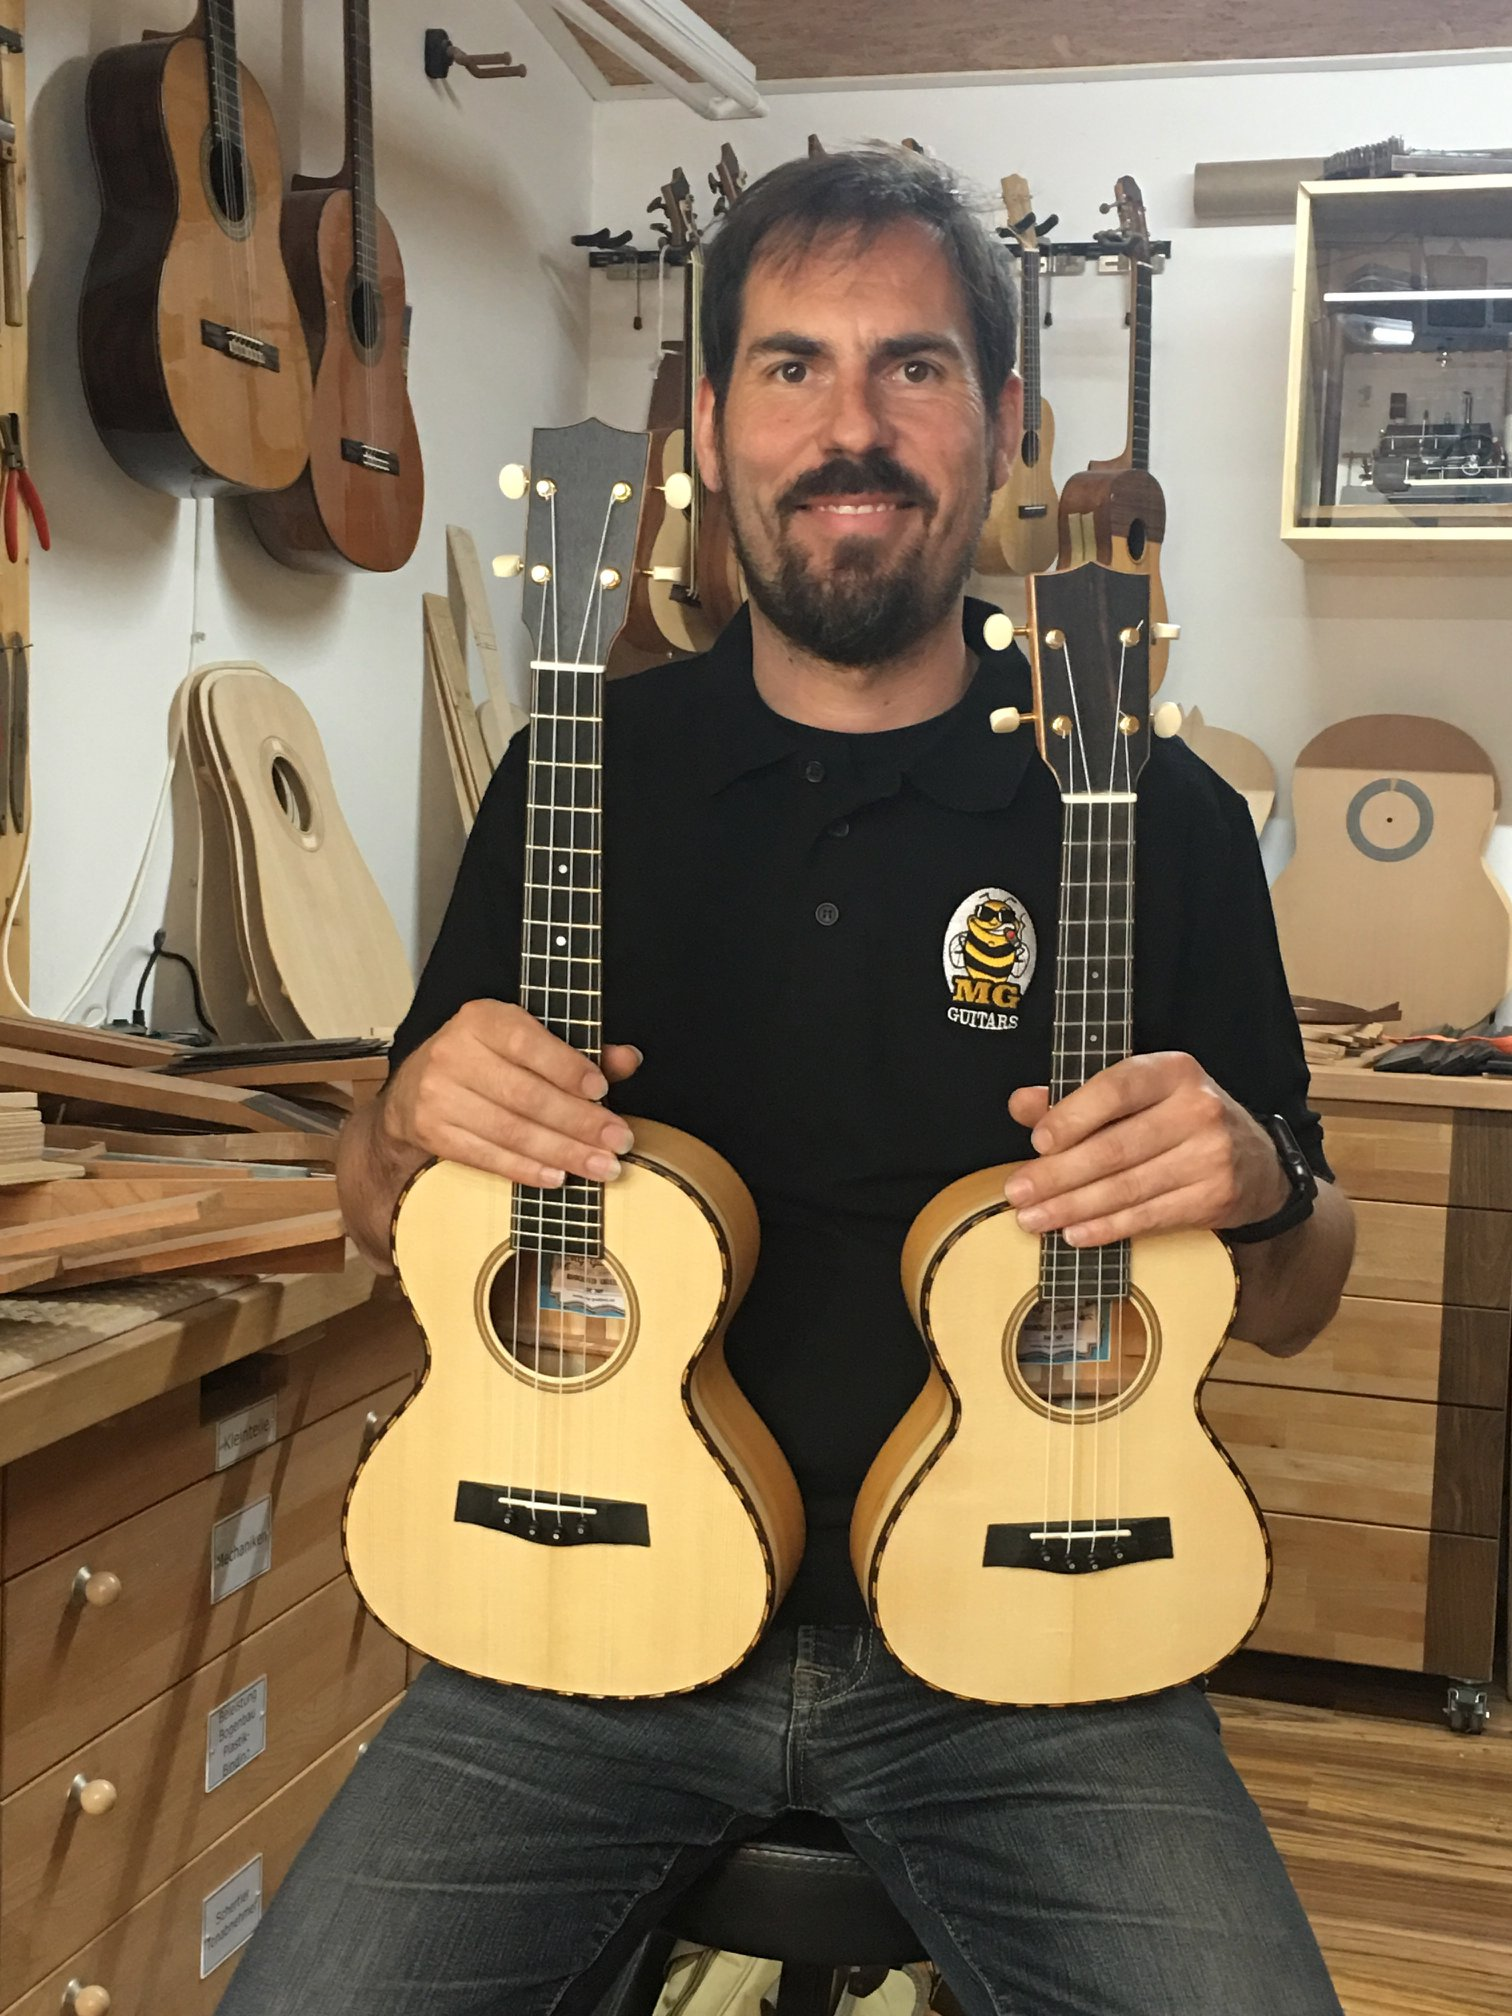 MG-Guitars Ukulele